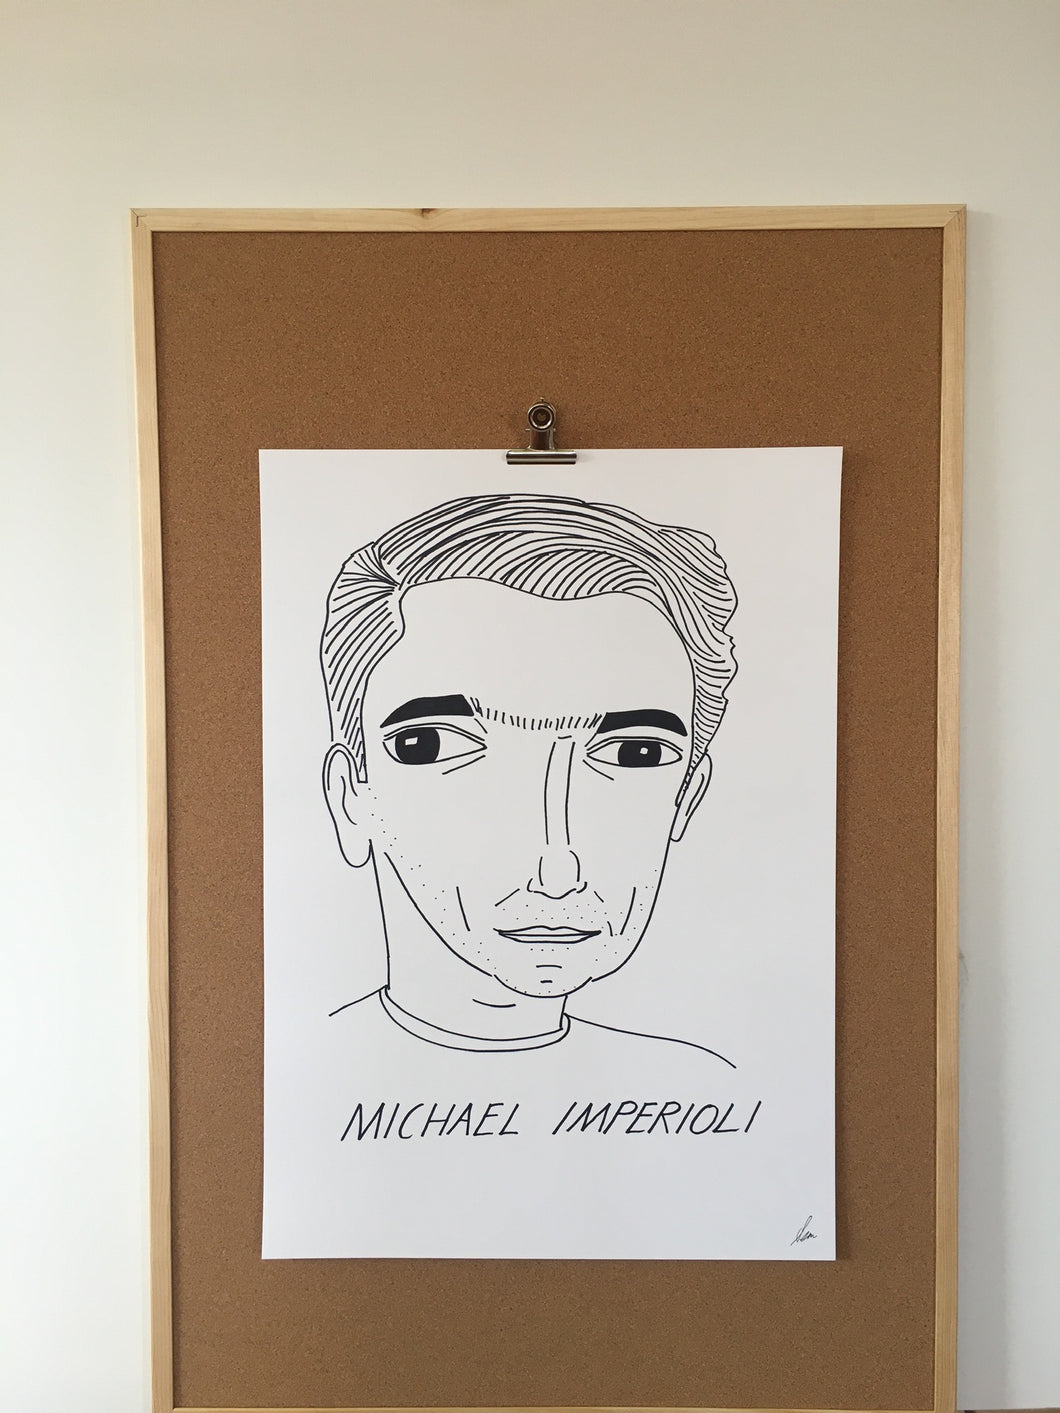 Badly Drawn Michael Imperioli - Original Drawing - A2.